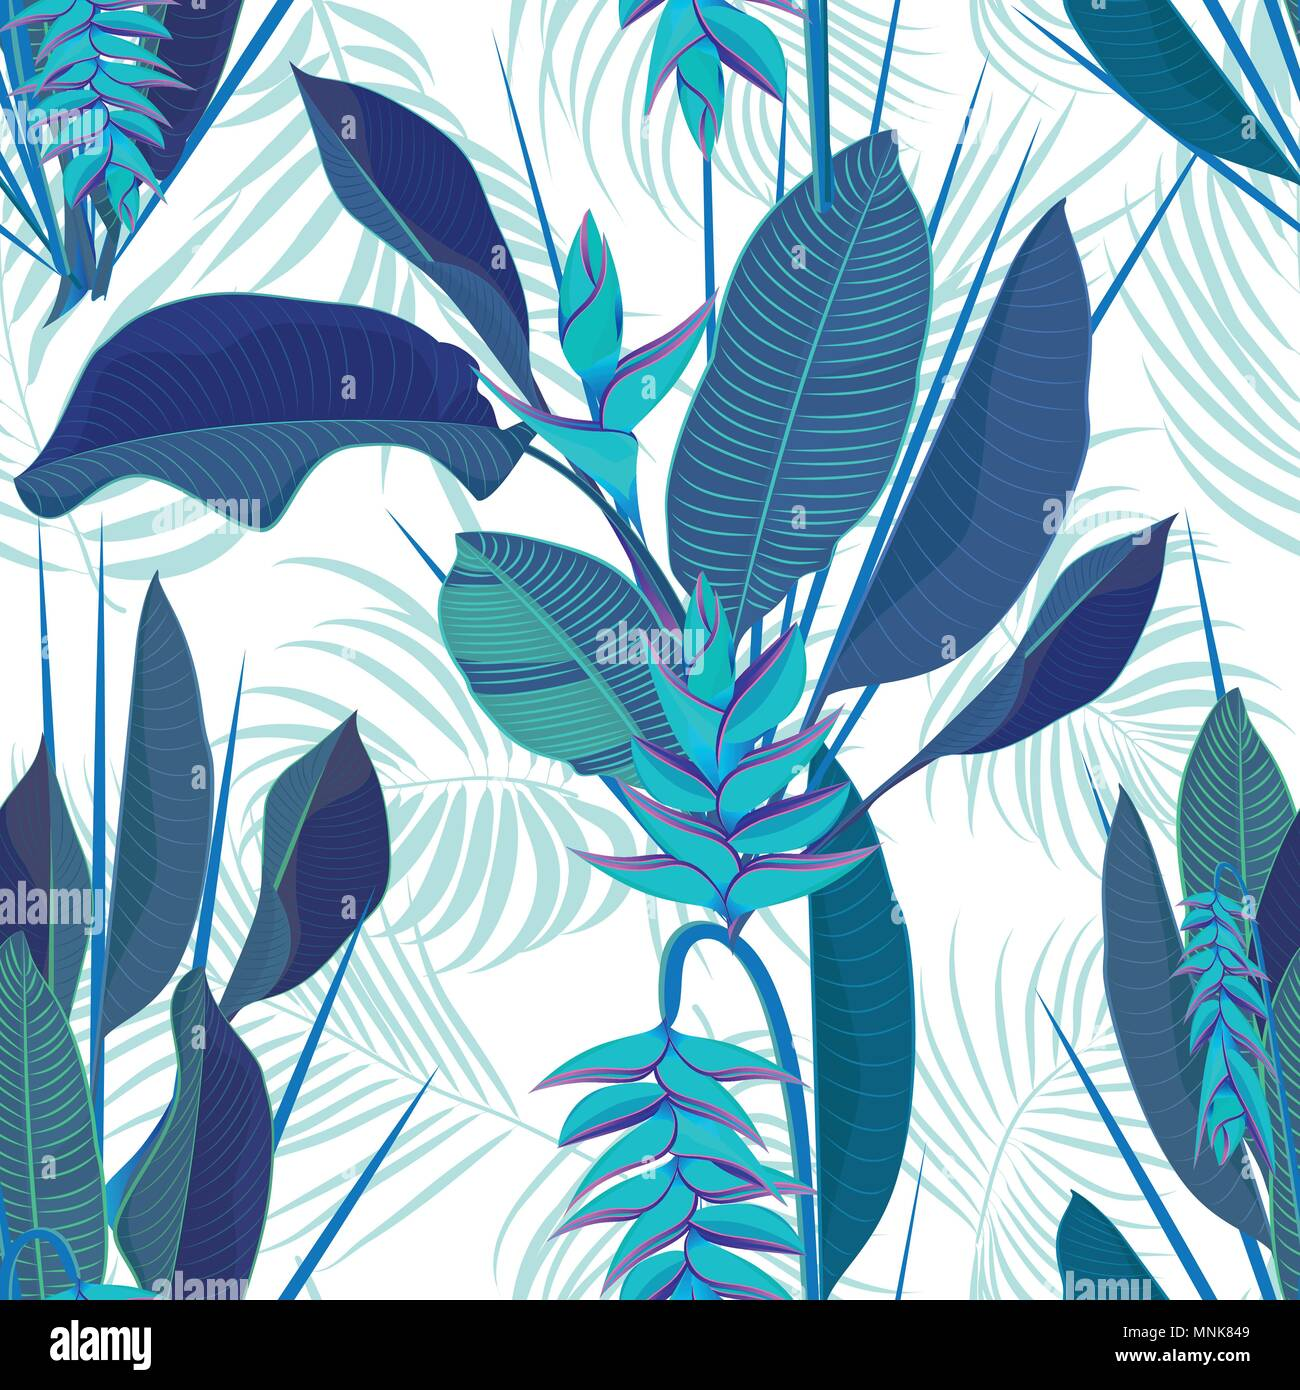 Tropical Flower Quitte La Direction Generale Heliconia Seamless